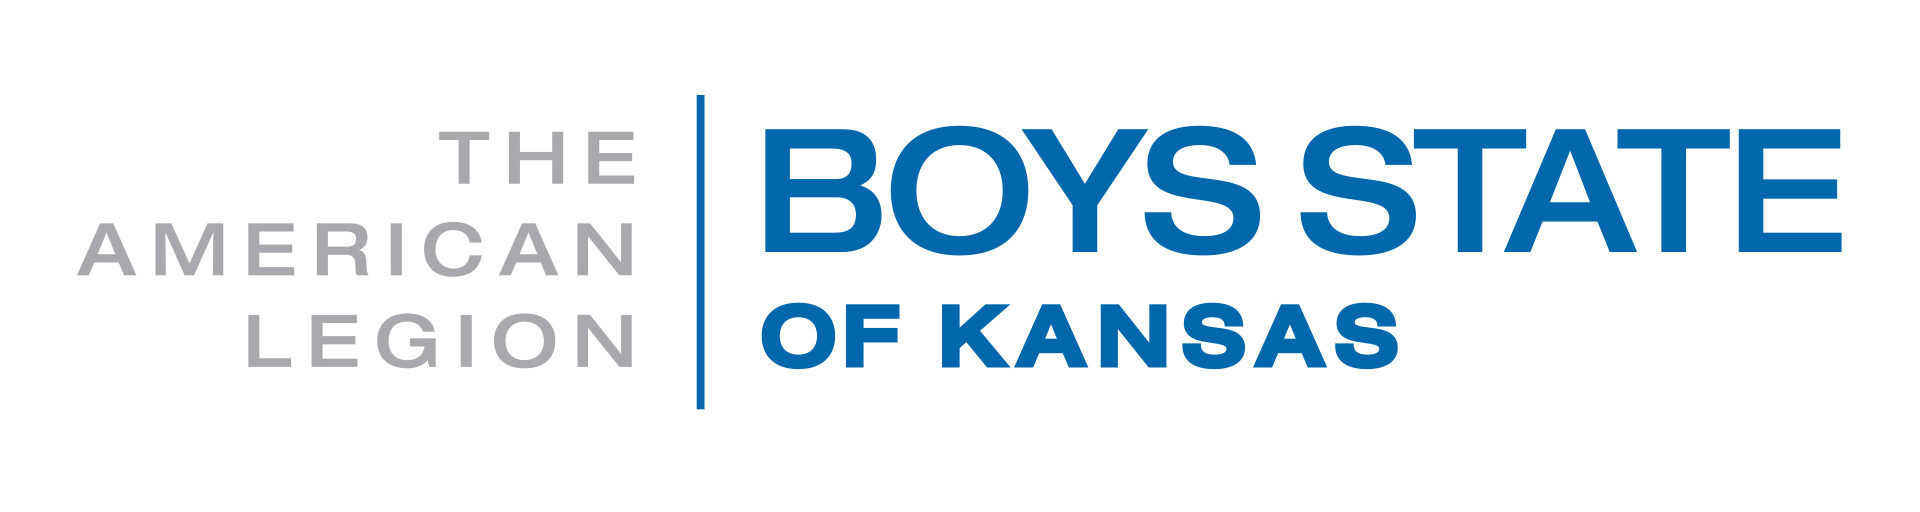 Logo for American Legion Boys State of Kansas Leadership Academy